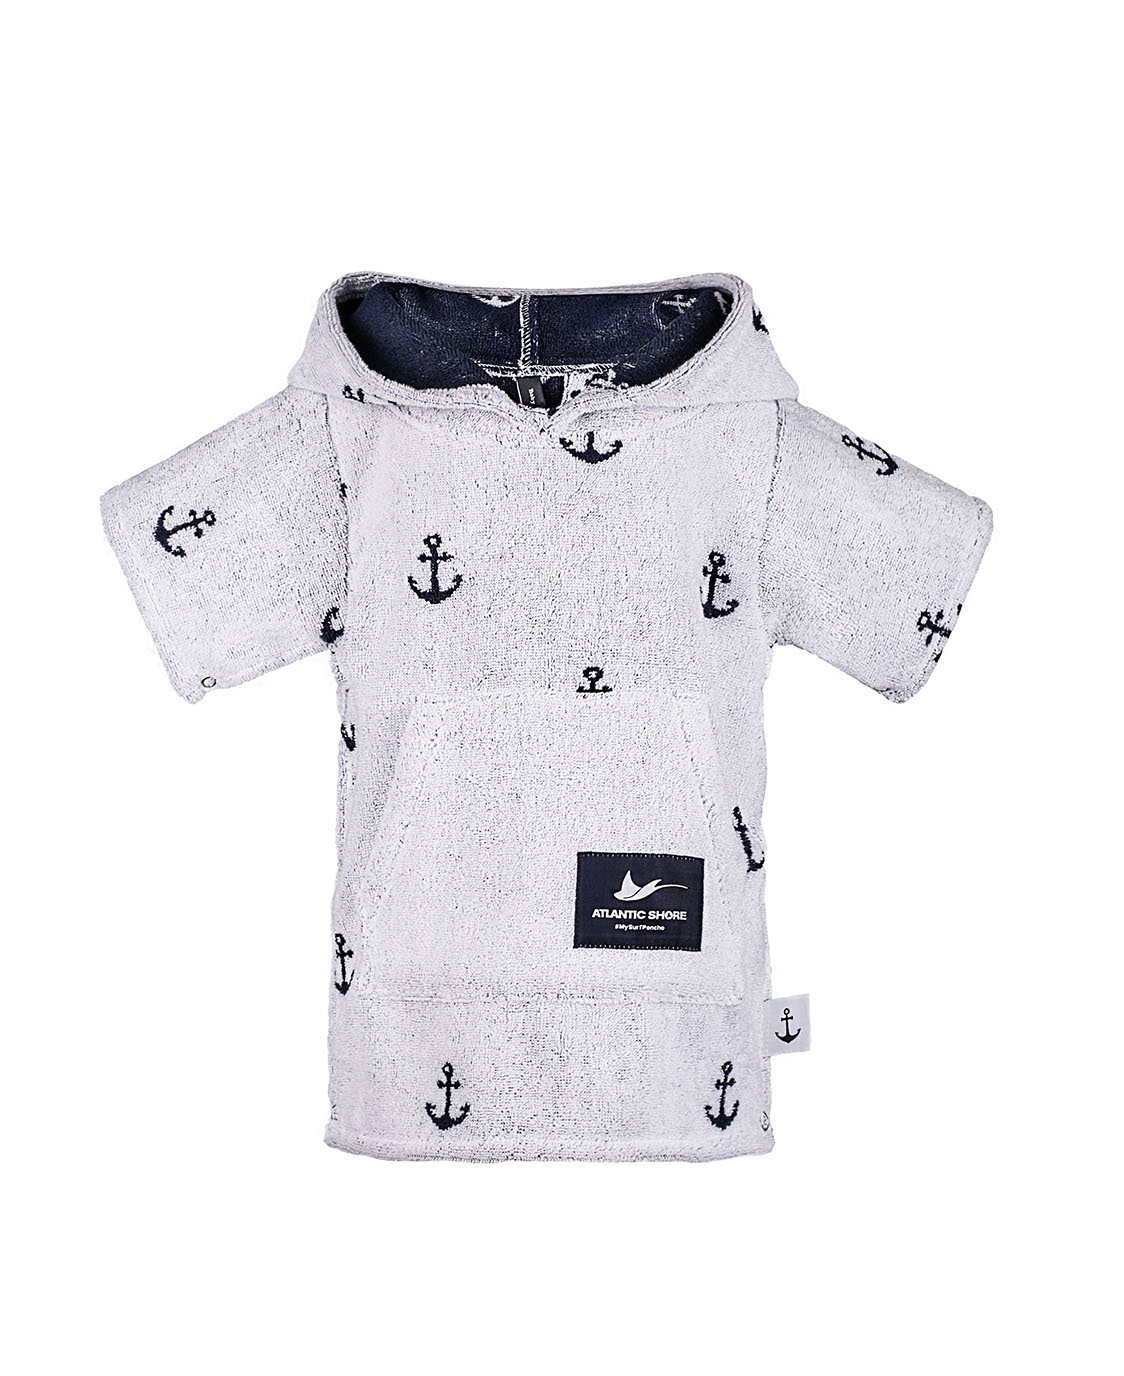 Atlantic Shore | Surf Poncho | Anchor | Baby | White